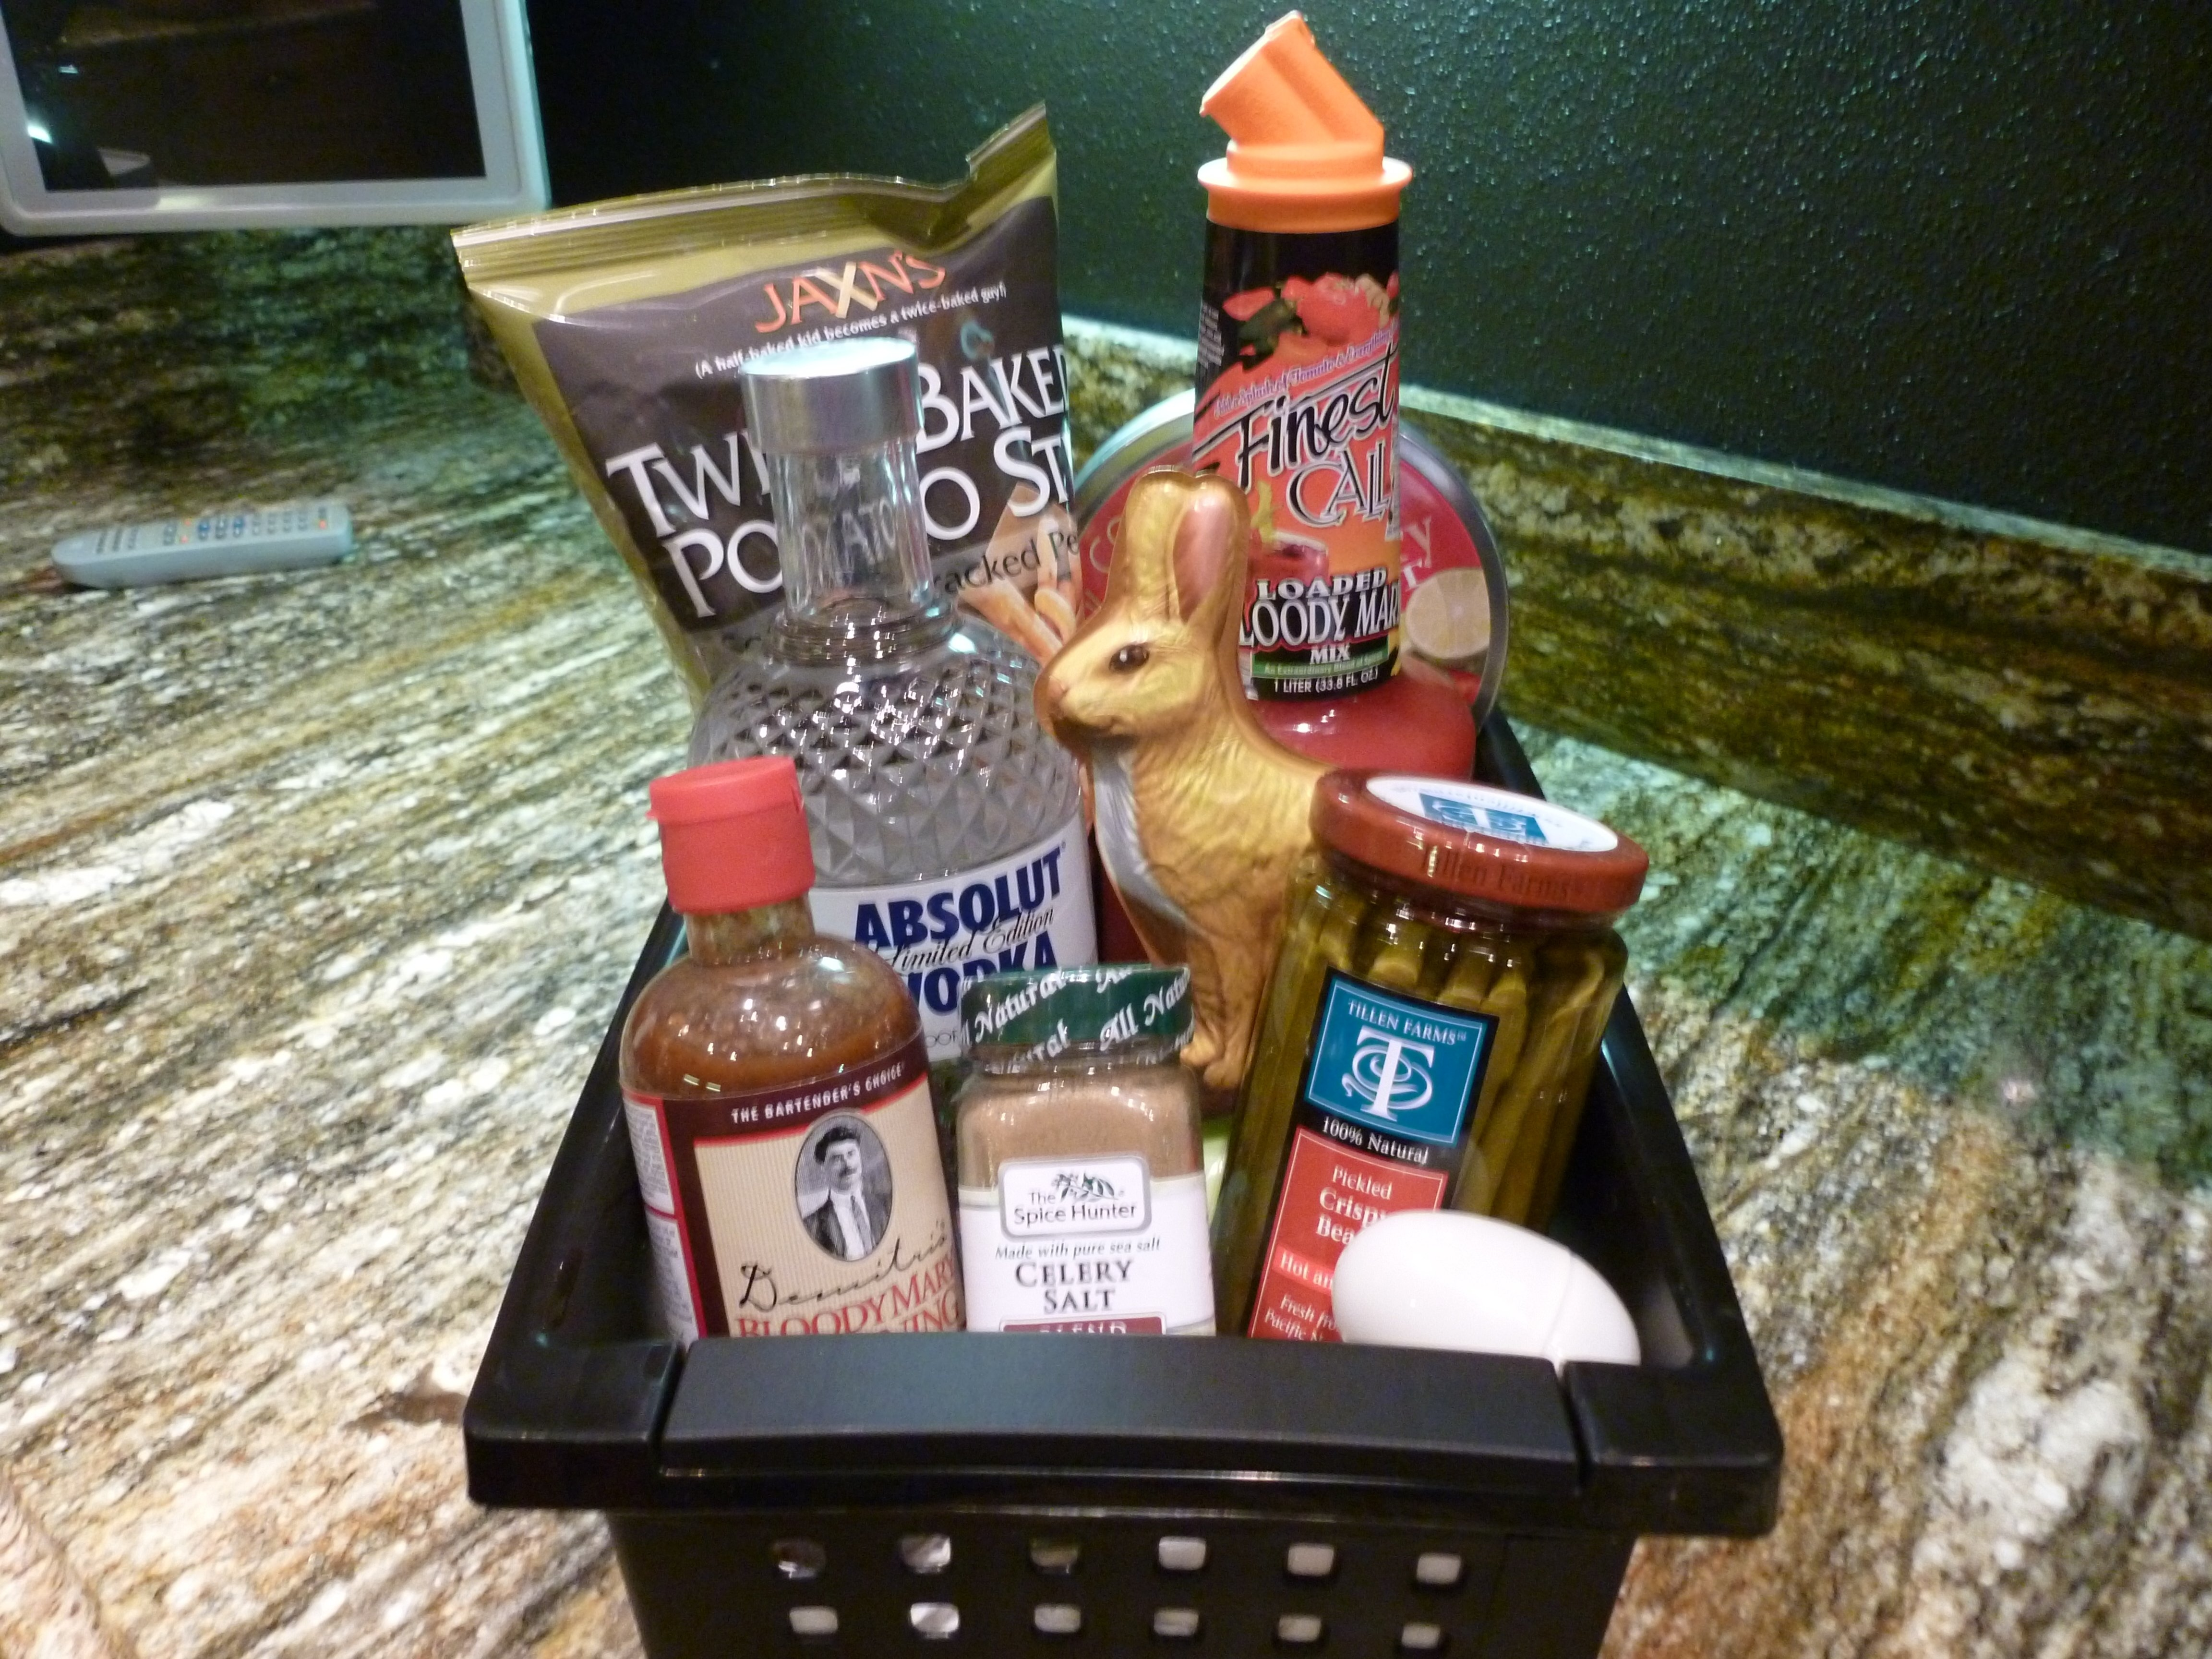 10 most recommended easter basket ideas for adults 10 most recommended easter basket ideas for adults bloody mary adult easter basket gift baskets pinterest negle Gallery